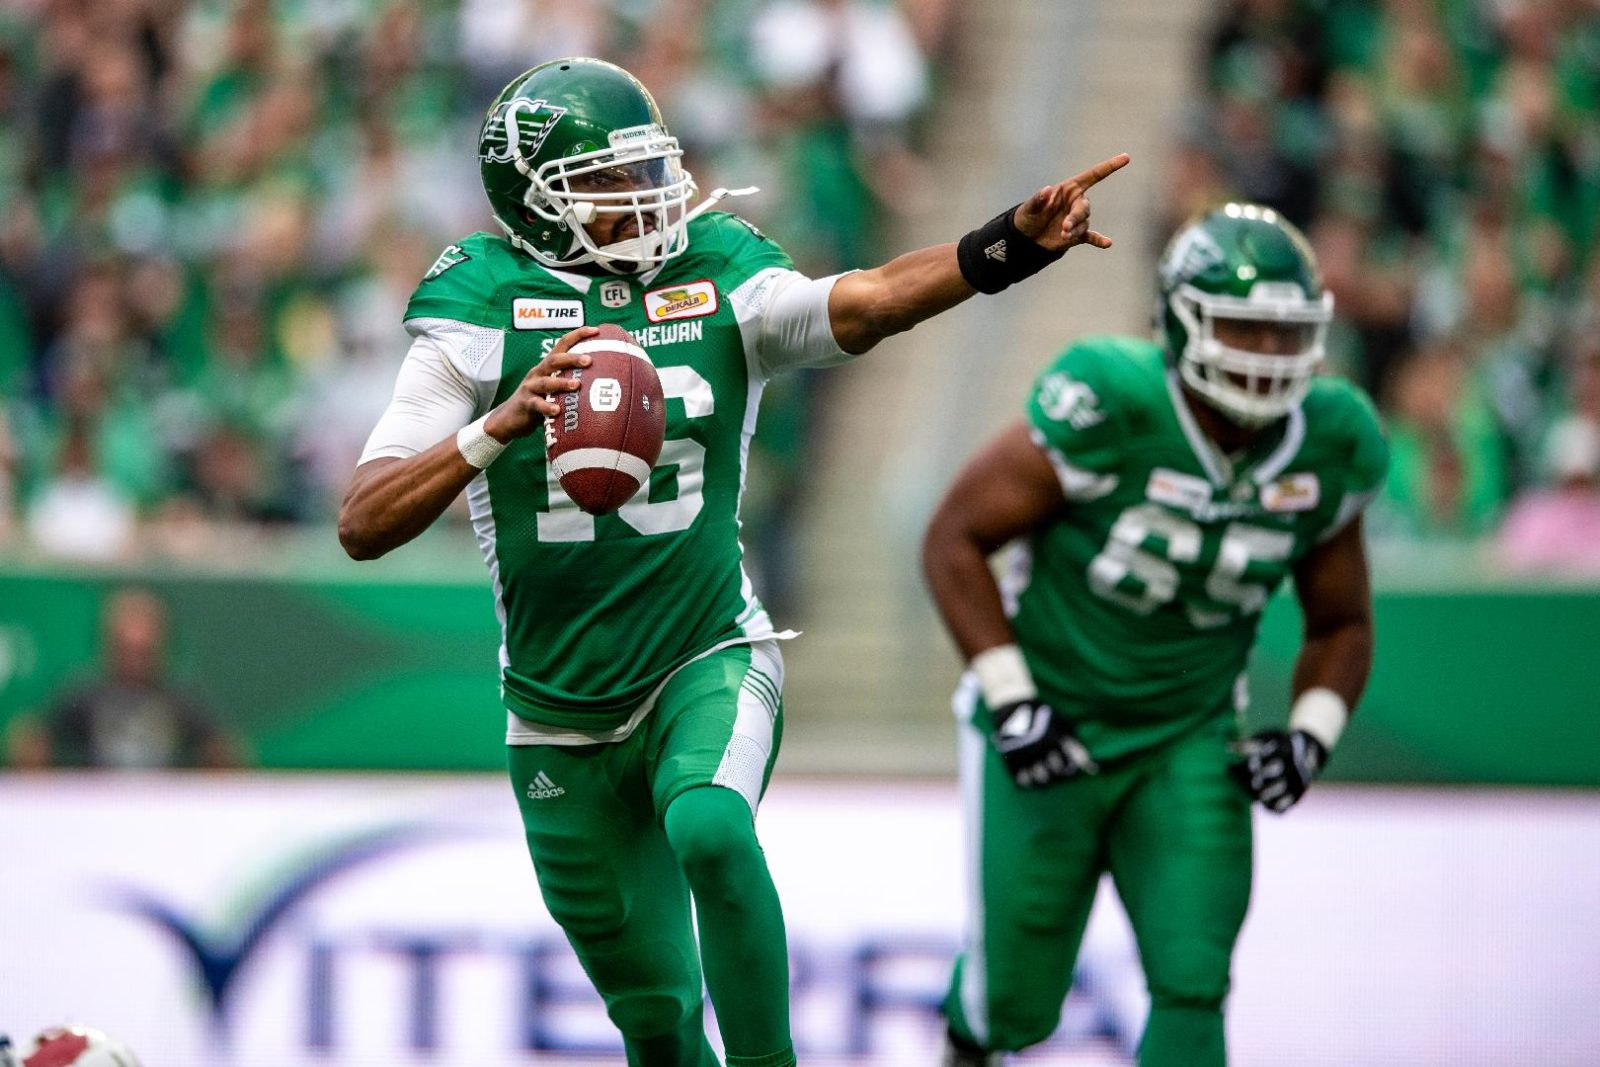 reputable site f9c9f 36d09 Notebook: Chris Jones' actions got the Riders' attention ...